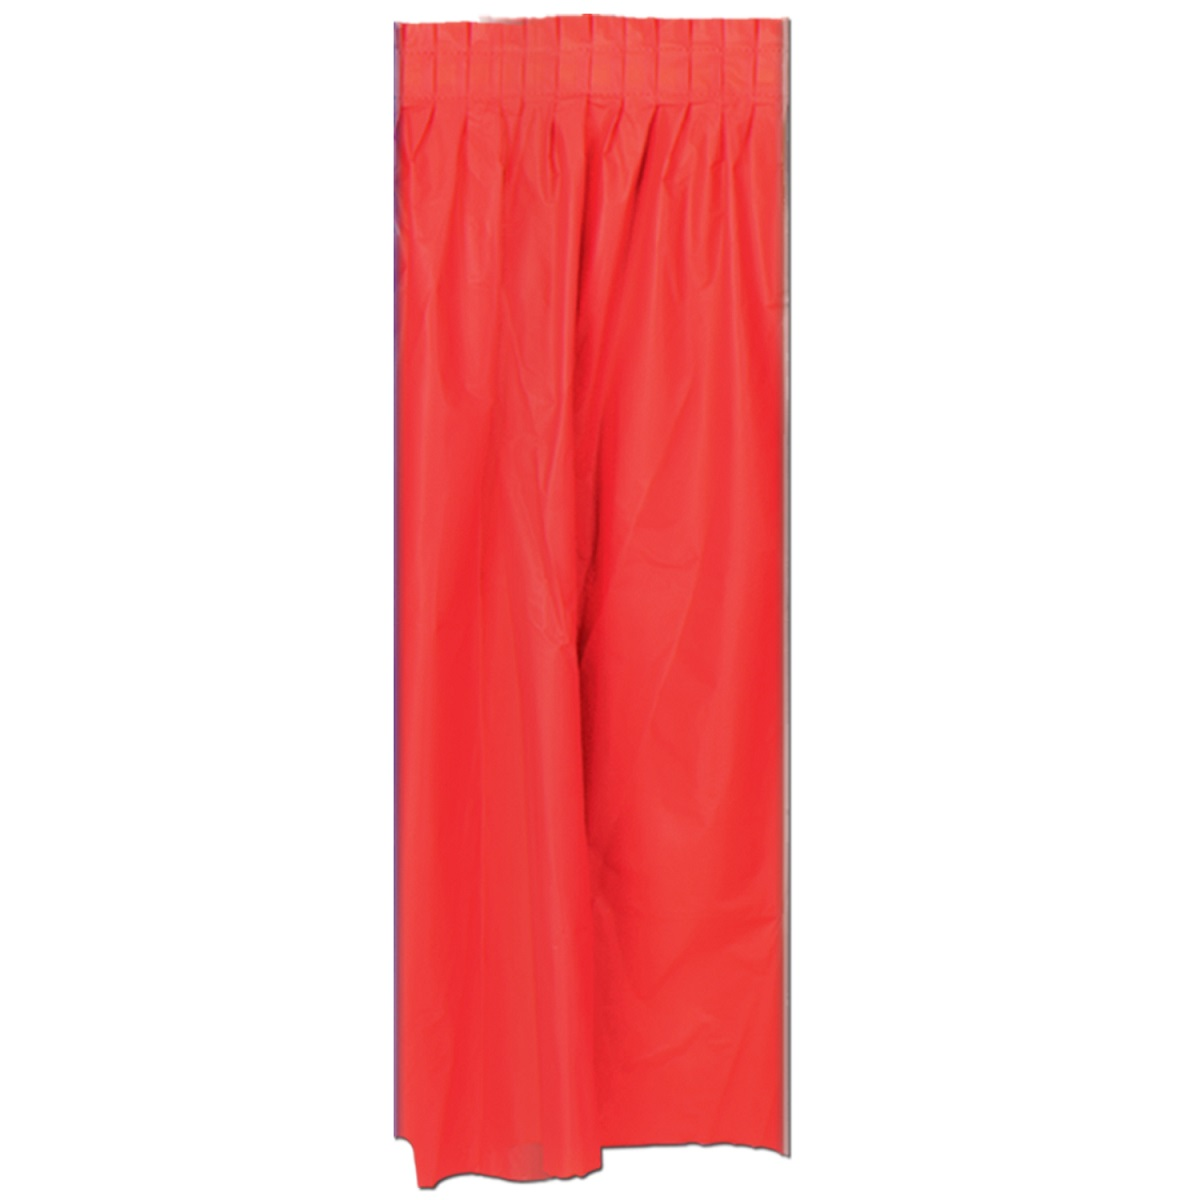 Pack of 6 Red Pleated Disposable Plastic Picnic Party Table Skirts 14'